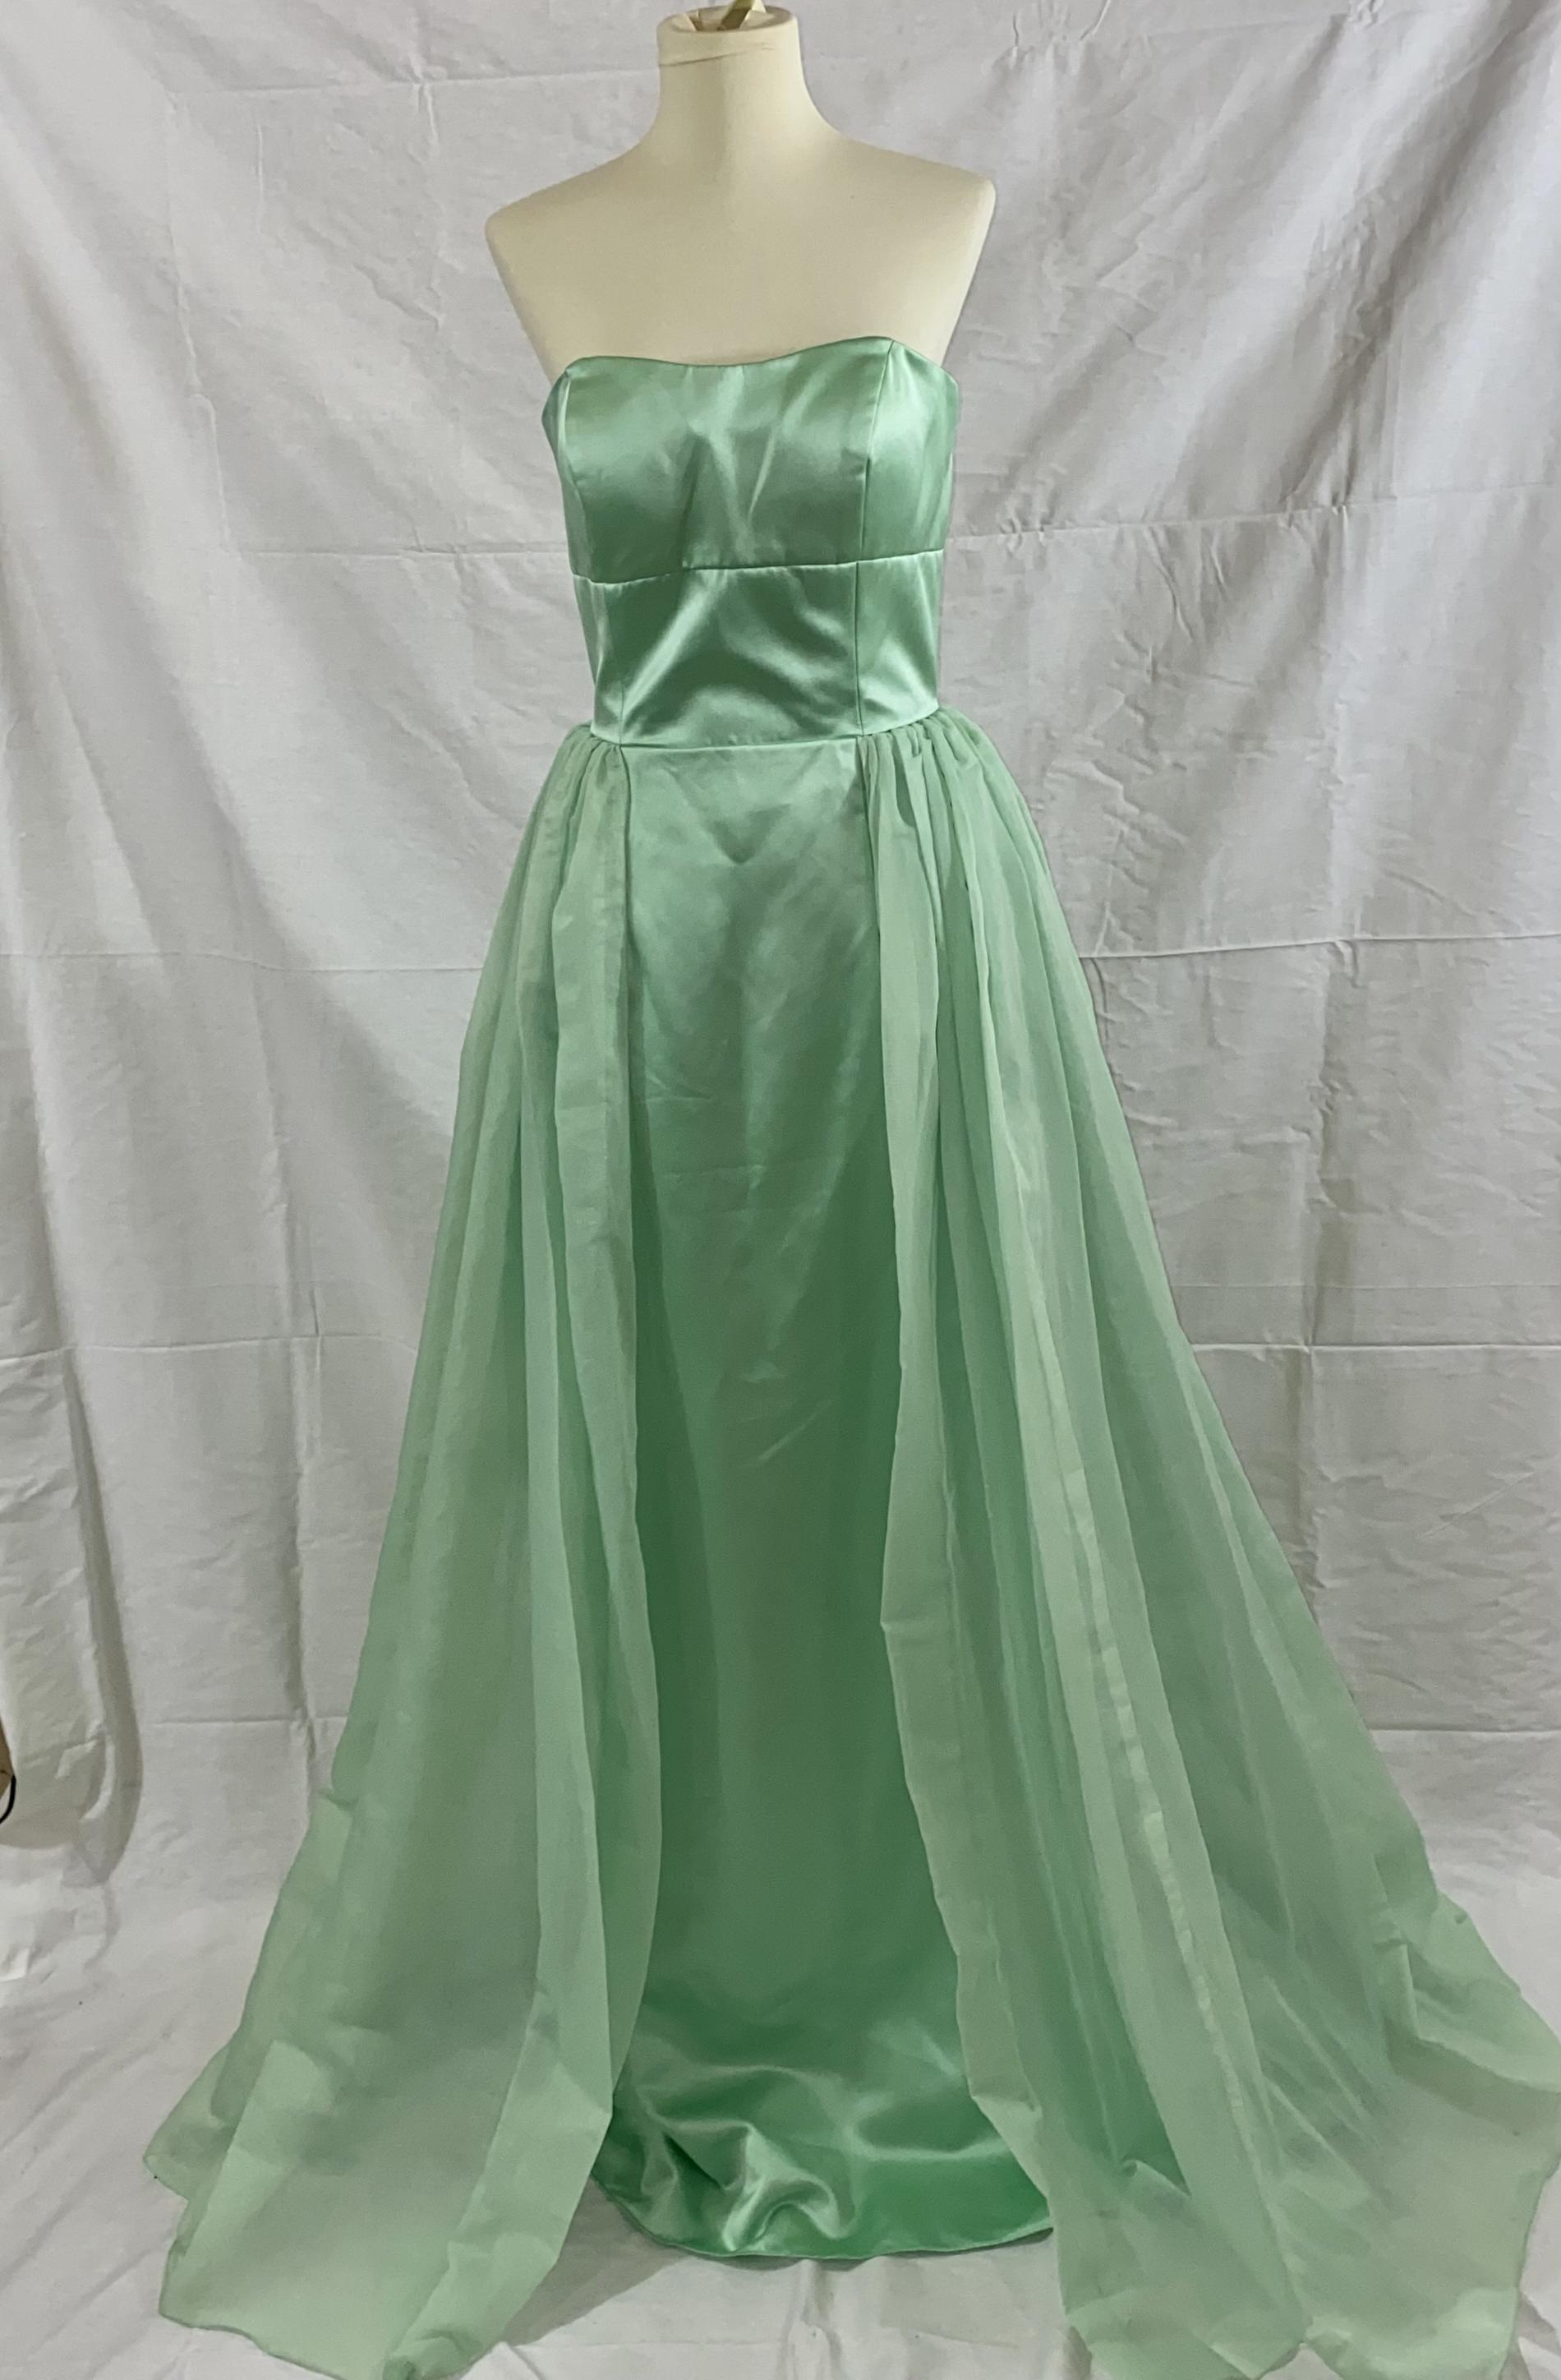 Sherri Hill Green Size 4 Prom Wedding Guest Bridesmaid Straight Dress on Queenly